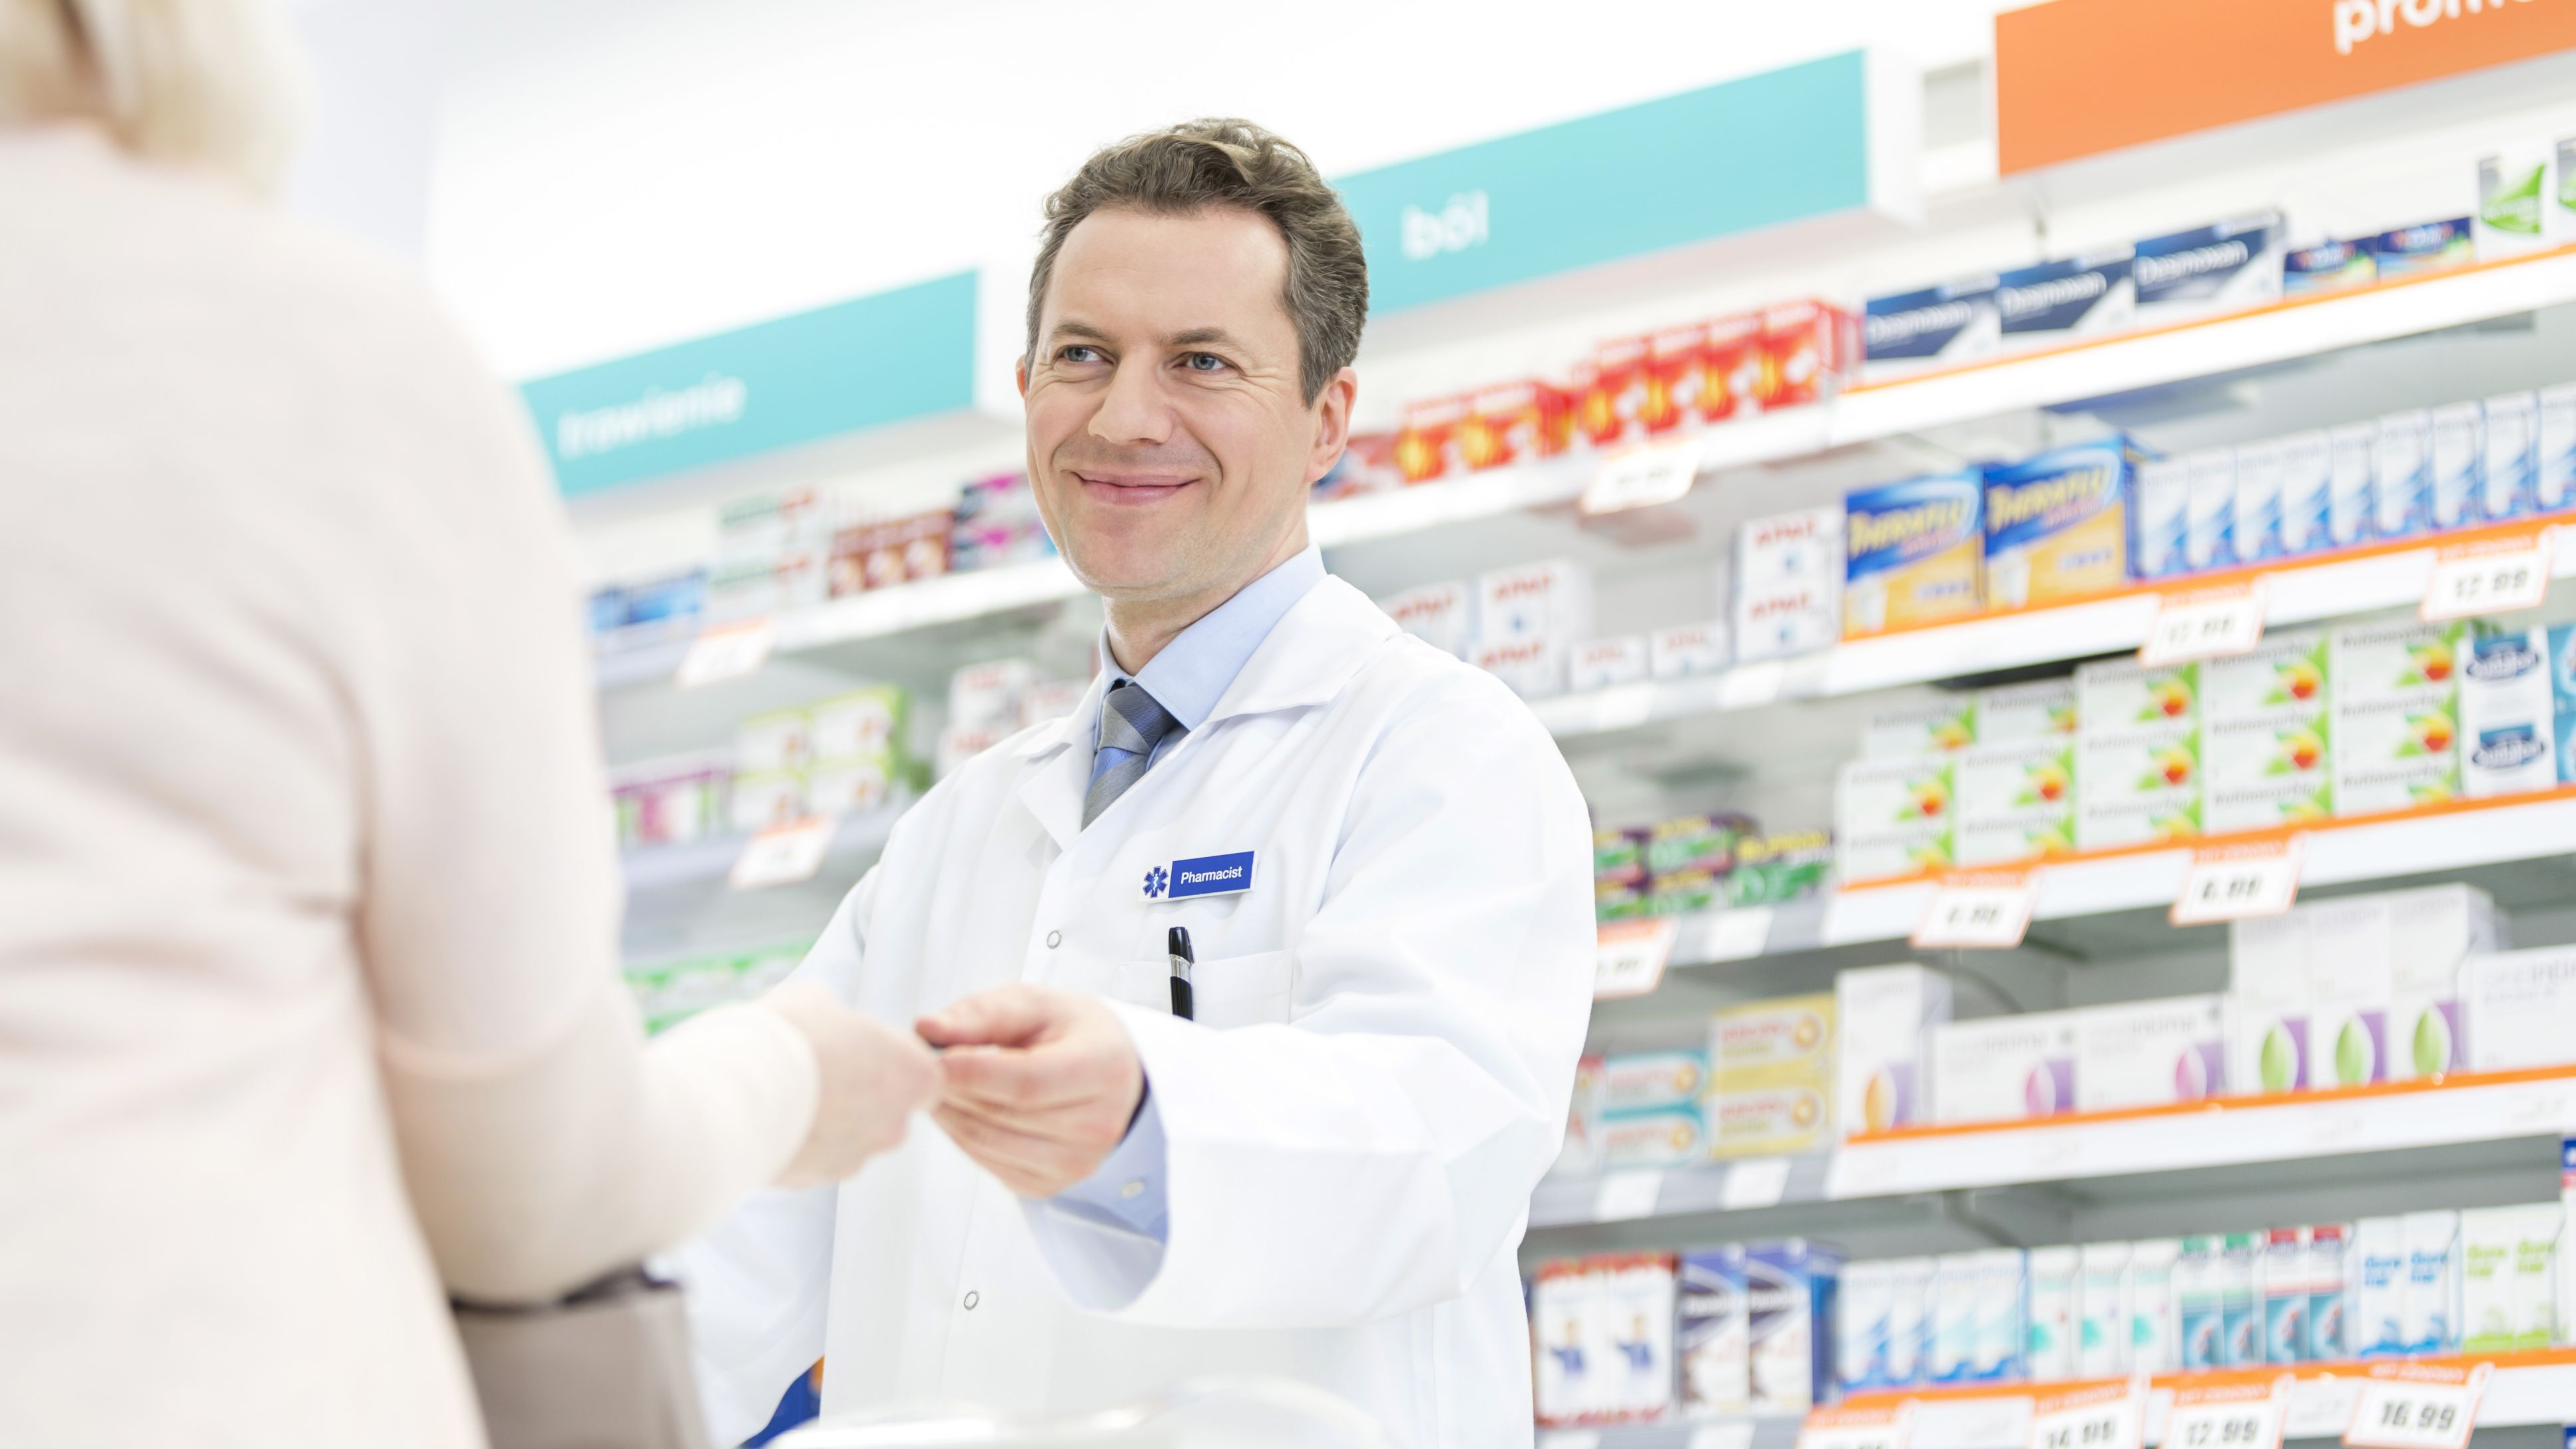 Where to Find Free or Low-Cost Prescription Drugs